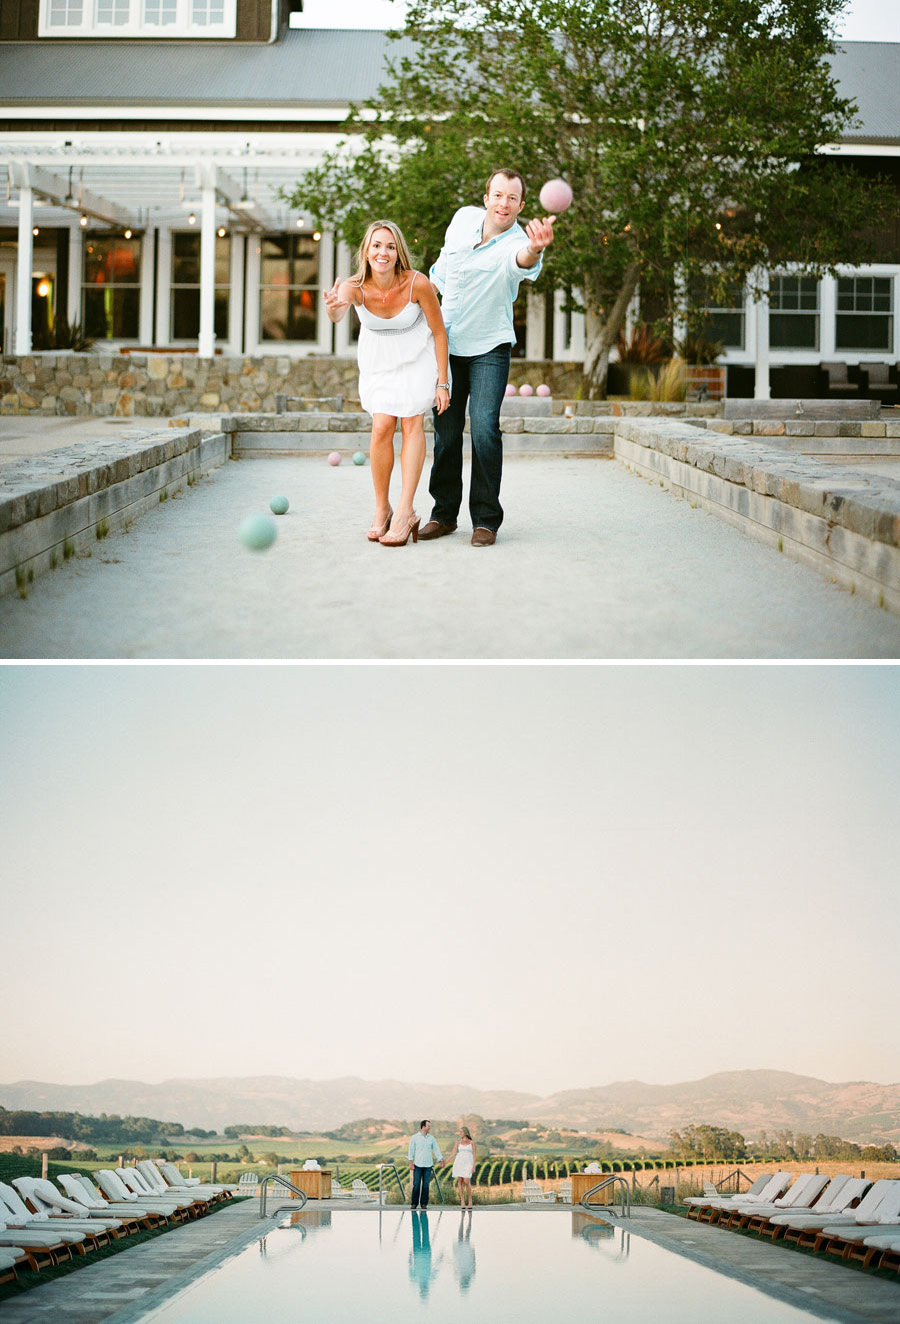 Carneros inn engagement photography wedding photography 0228